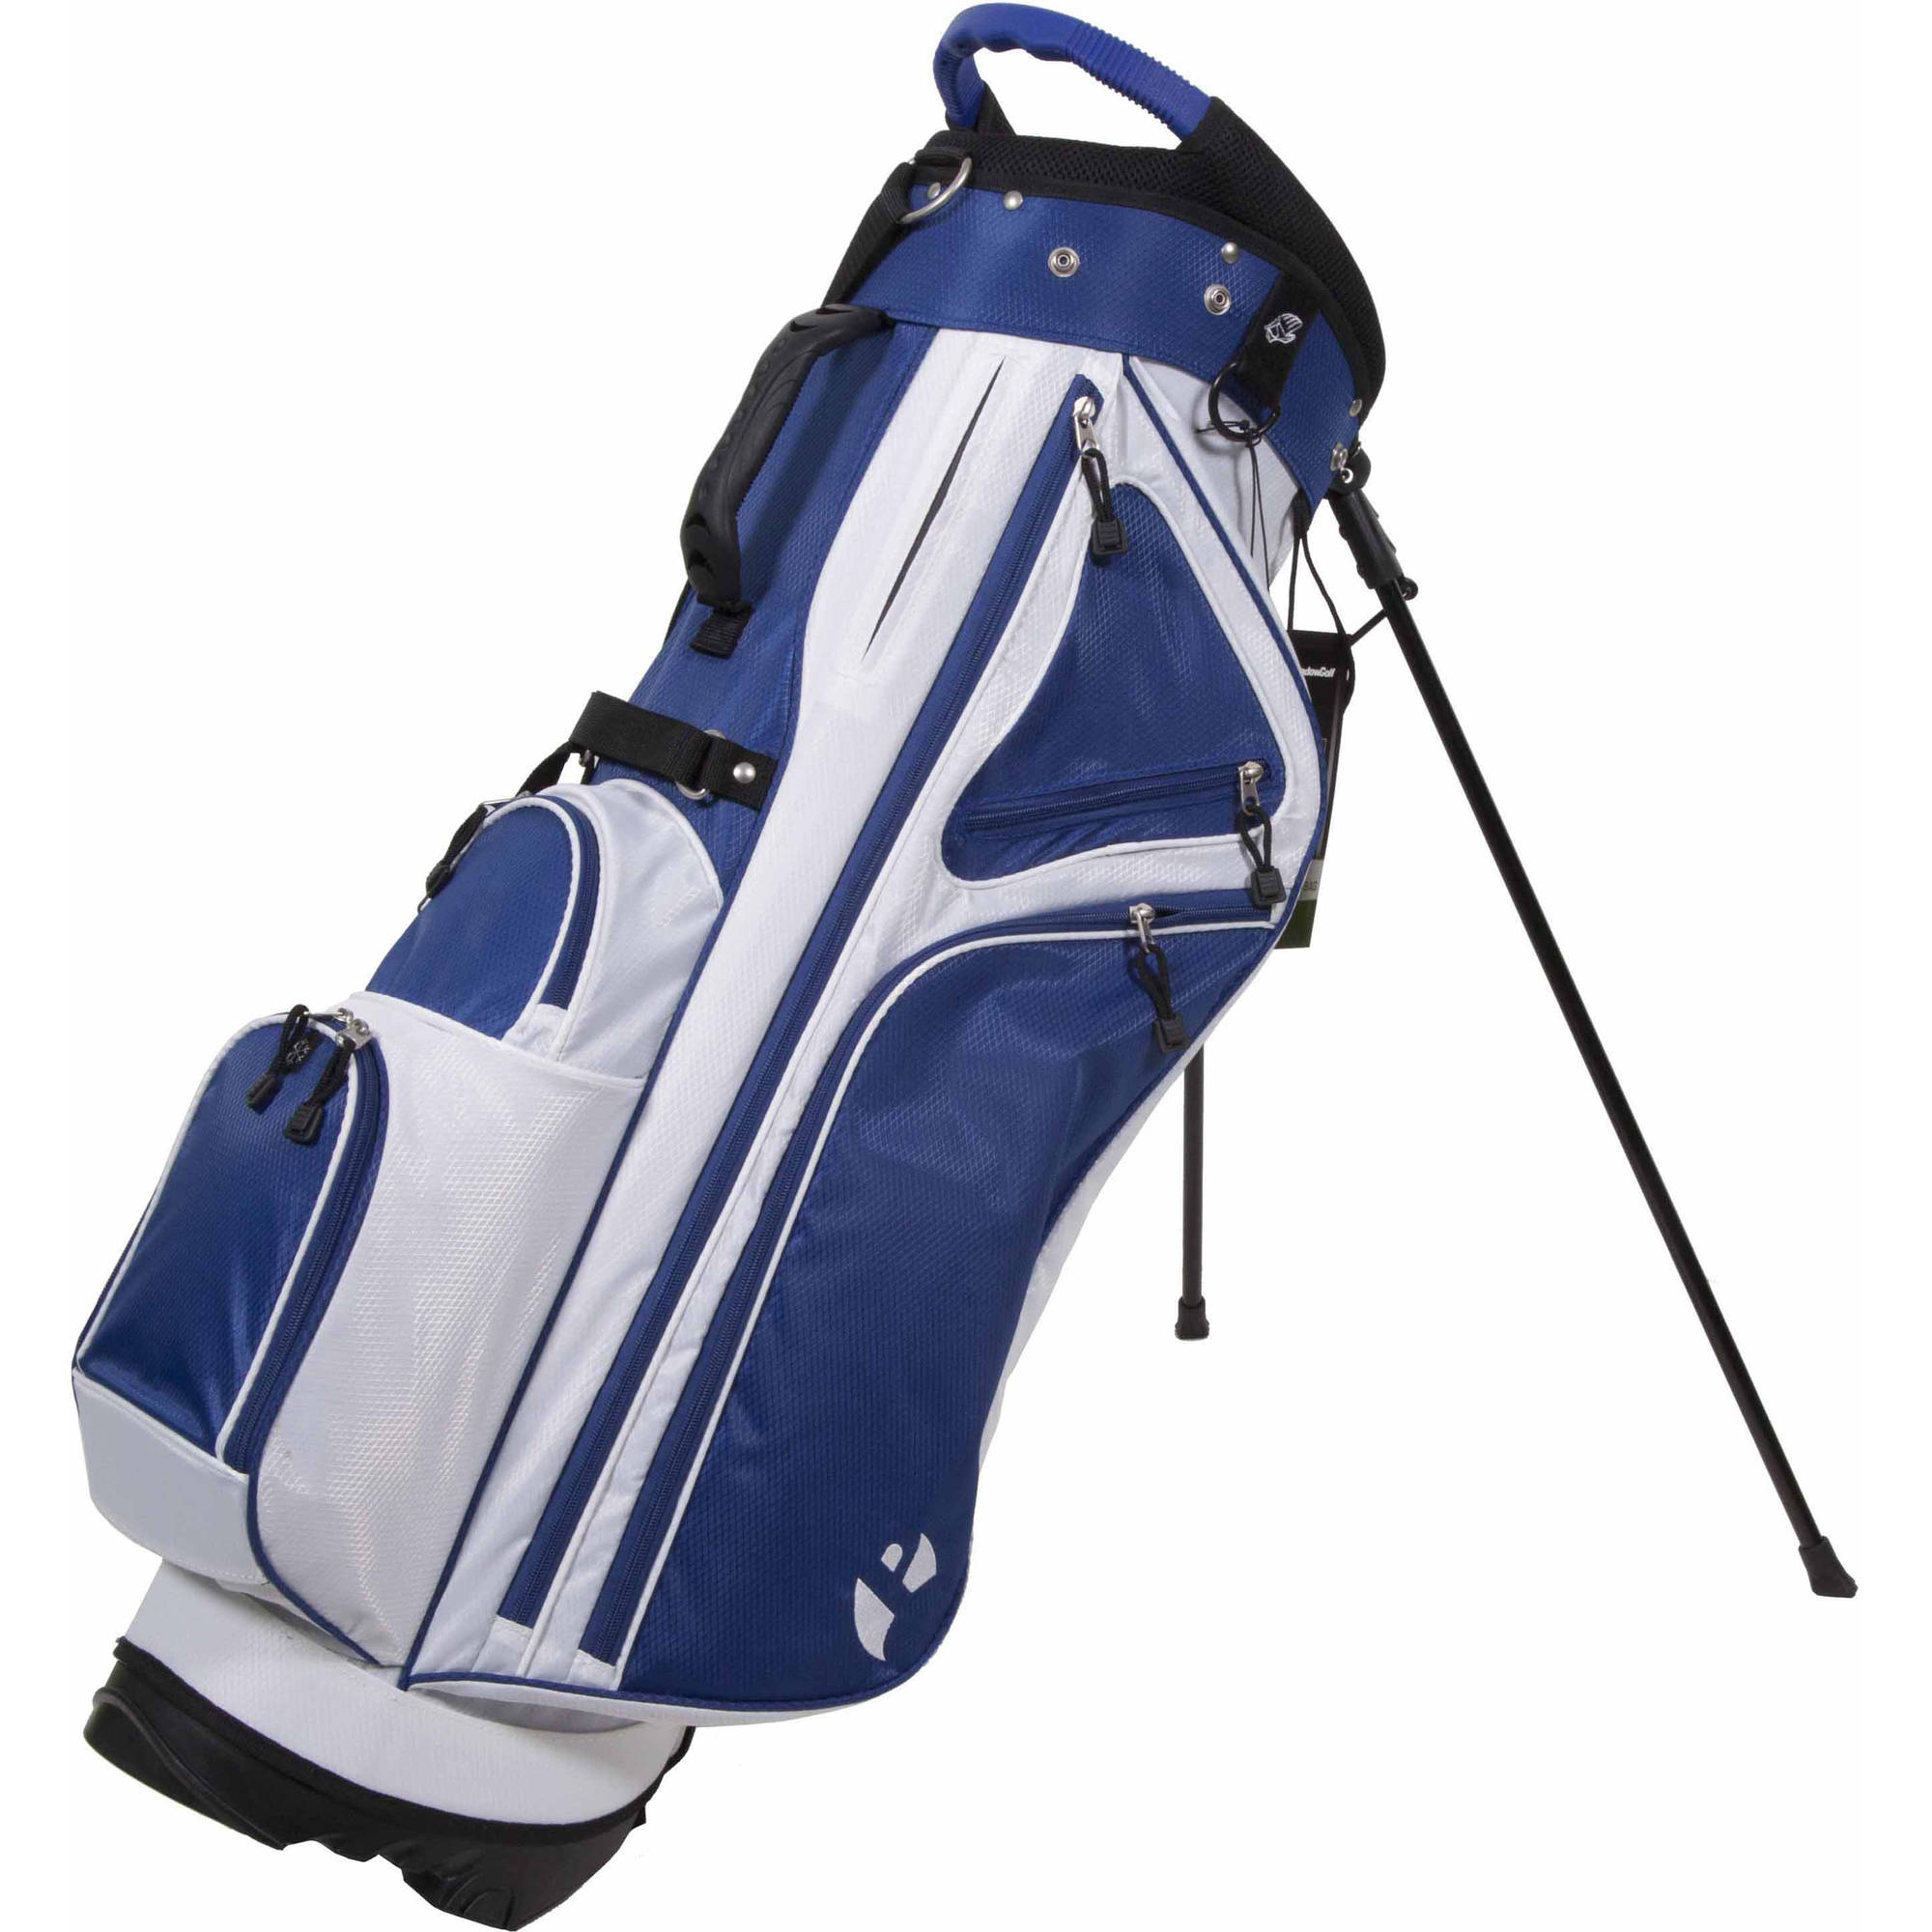 Courier 3.0 Stand Bag, Blue/White